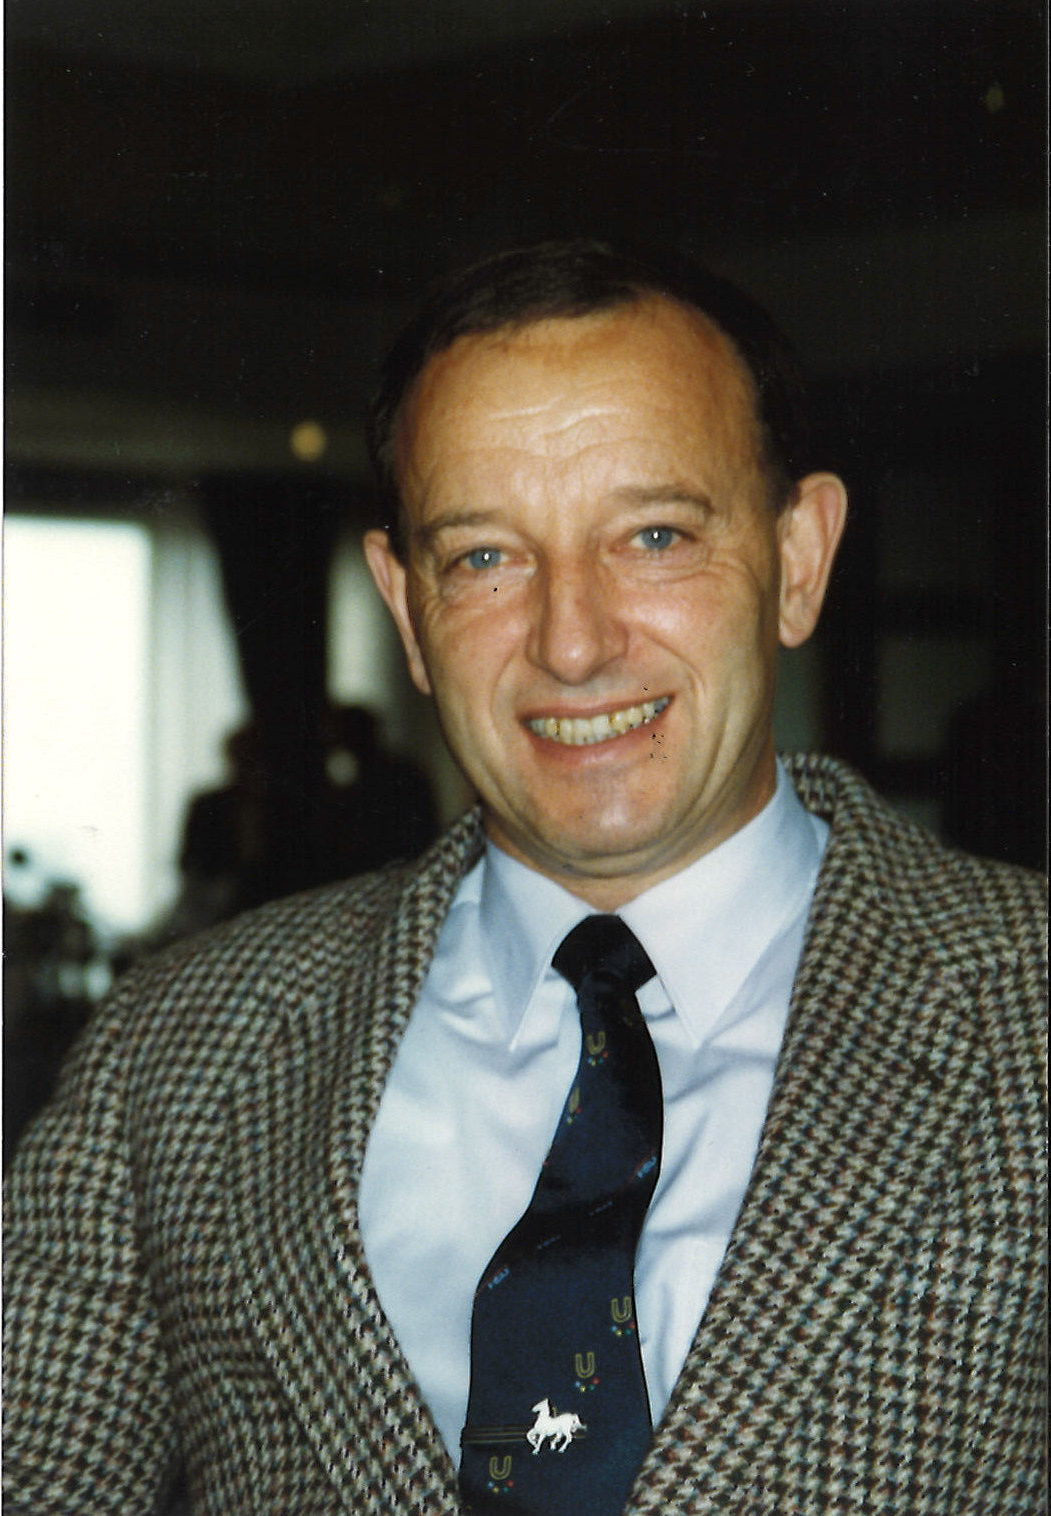 Lucerne 2021 Winter Universiade to be dedicated to former FISU vice-president Holzer